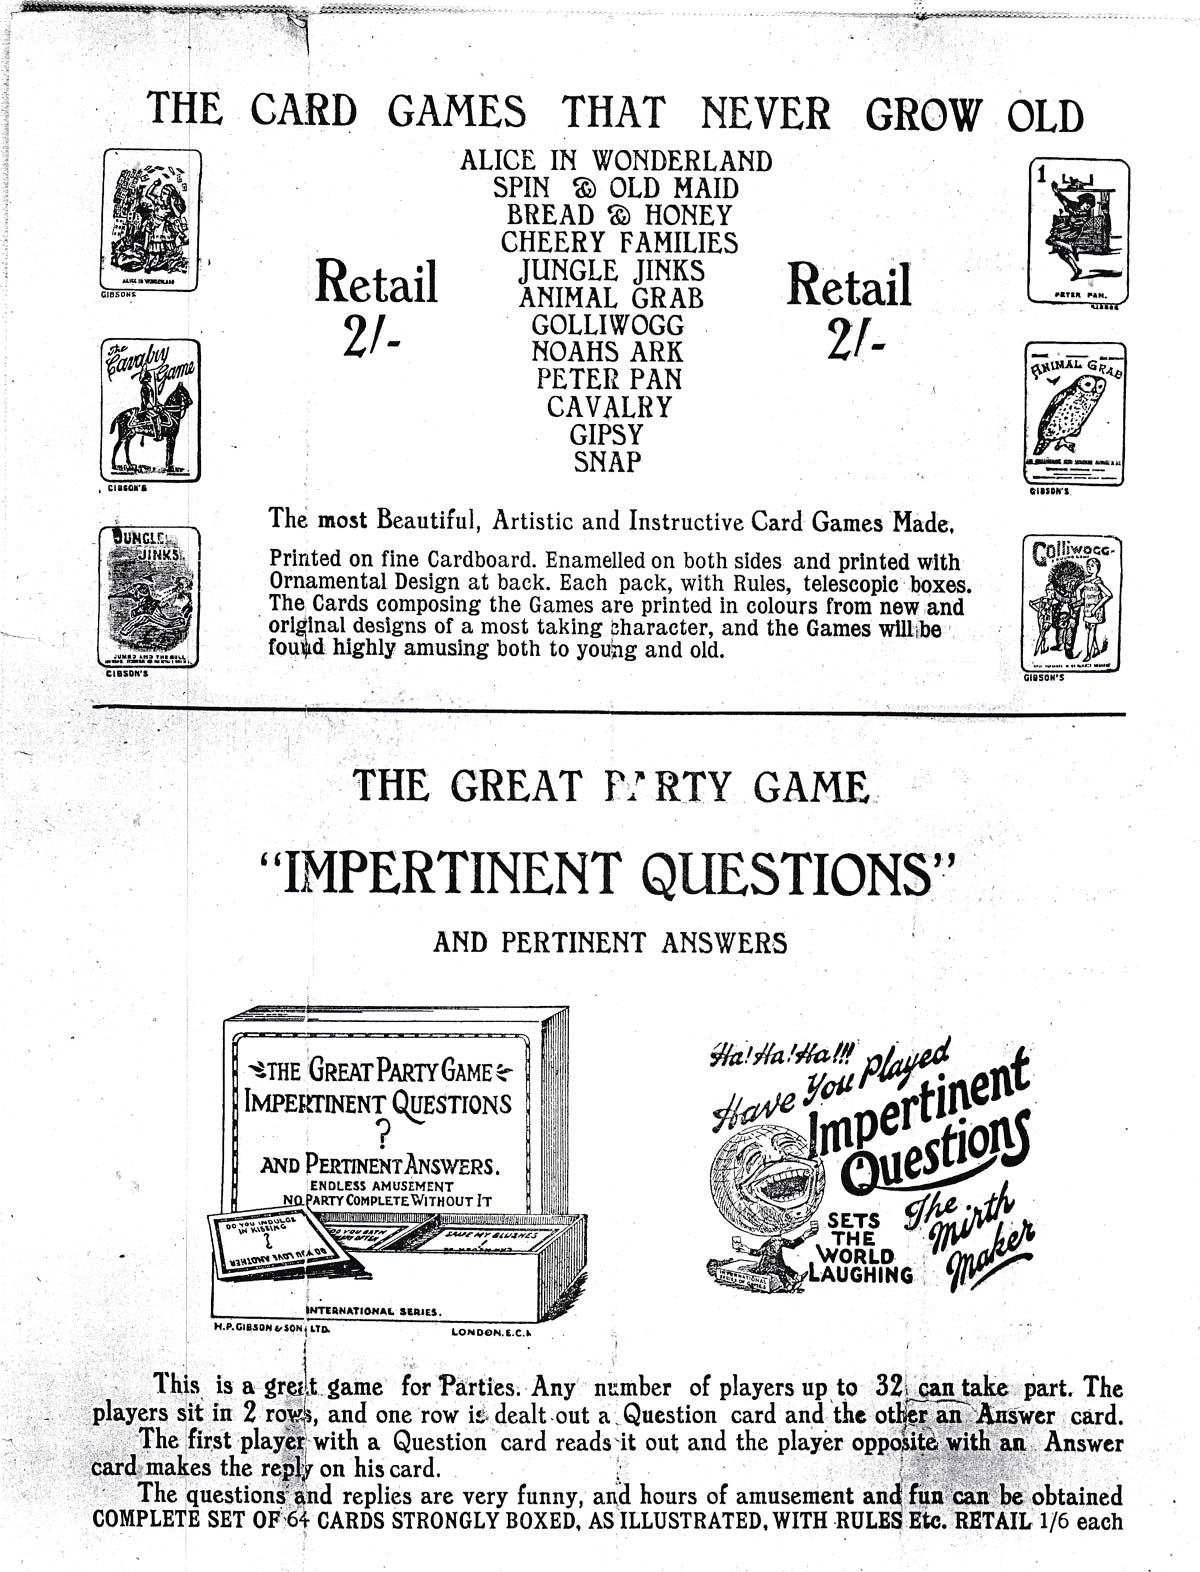 Gibsons Games Leaflet, c.1920